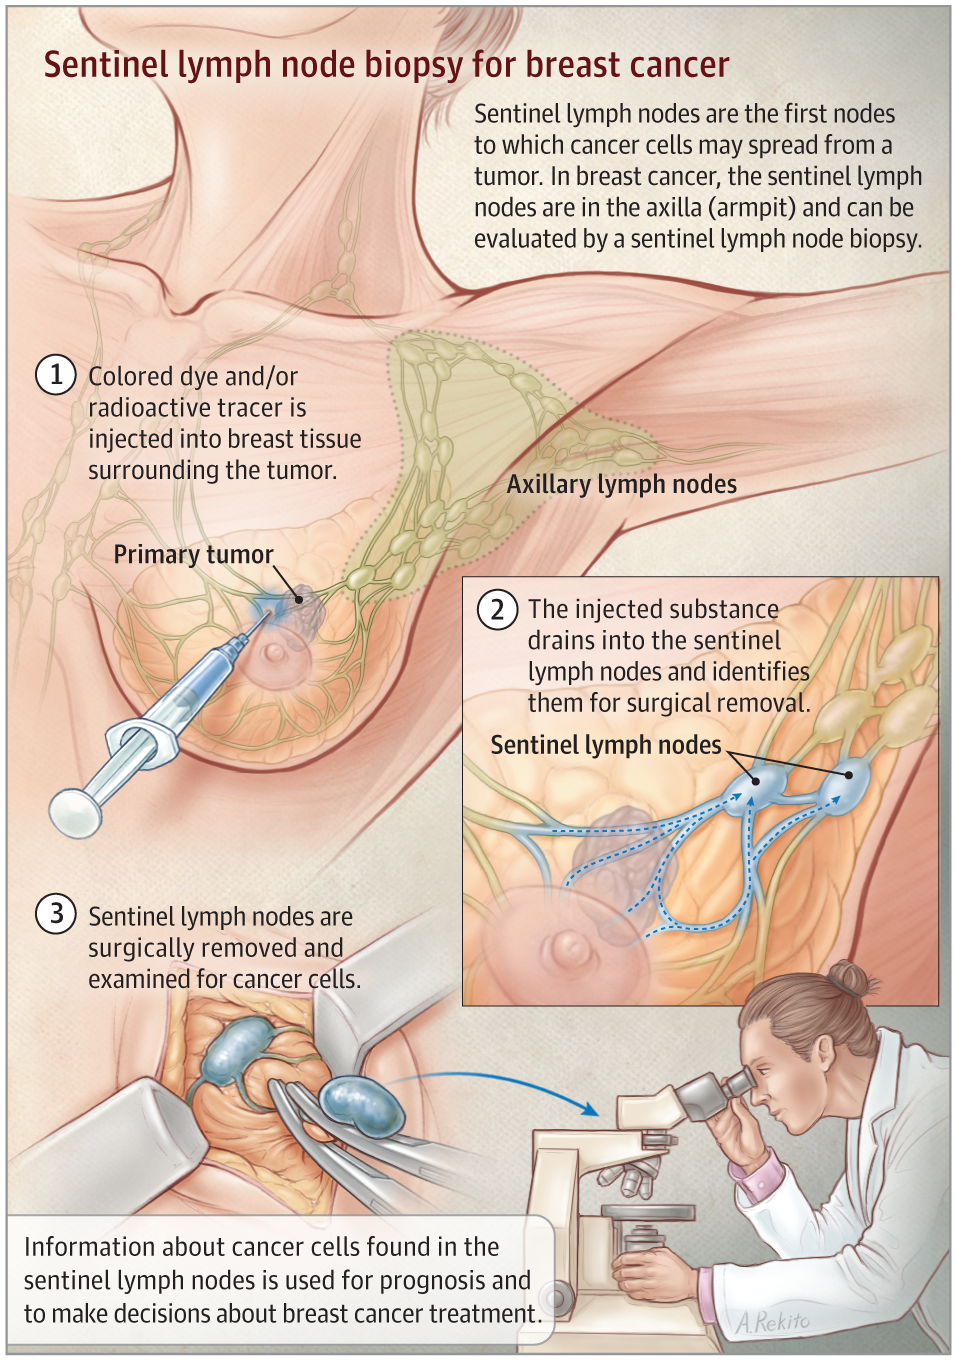 Lymphatic Mapping And Sentinel Lymph Node Biopsy For Breast Cancer